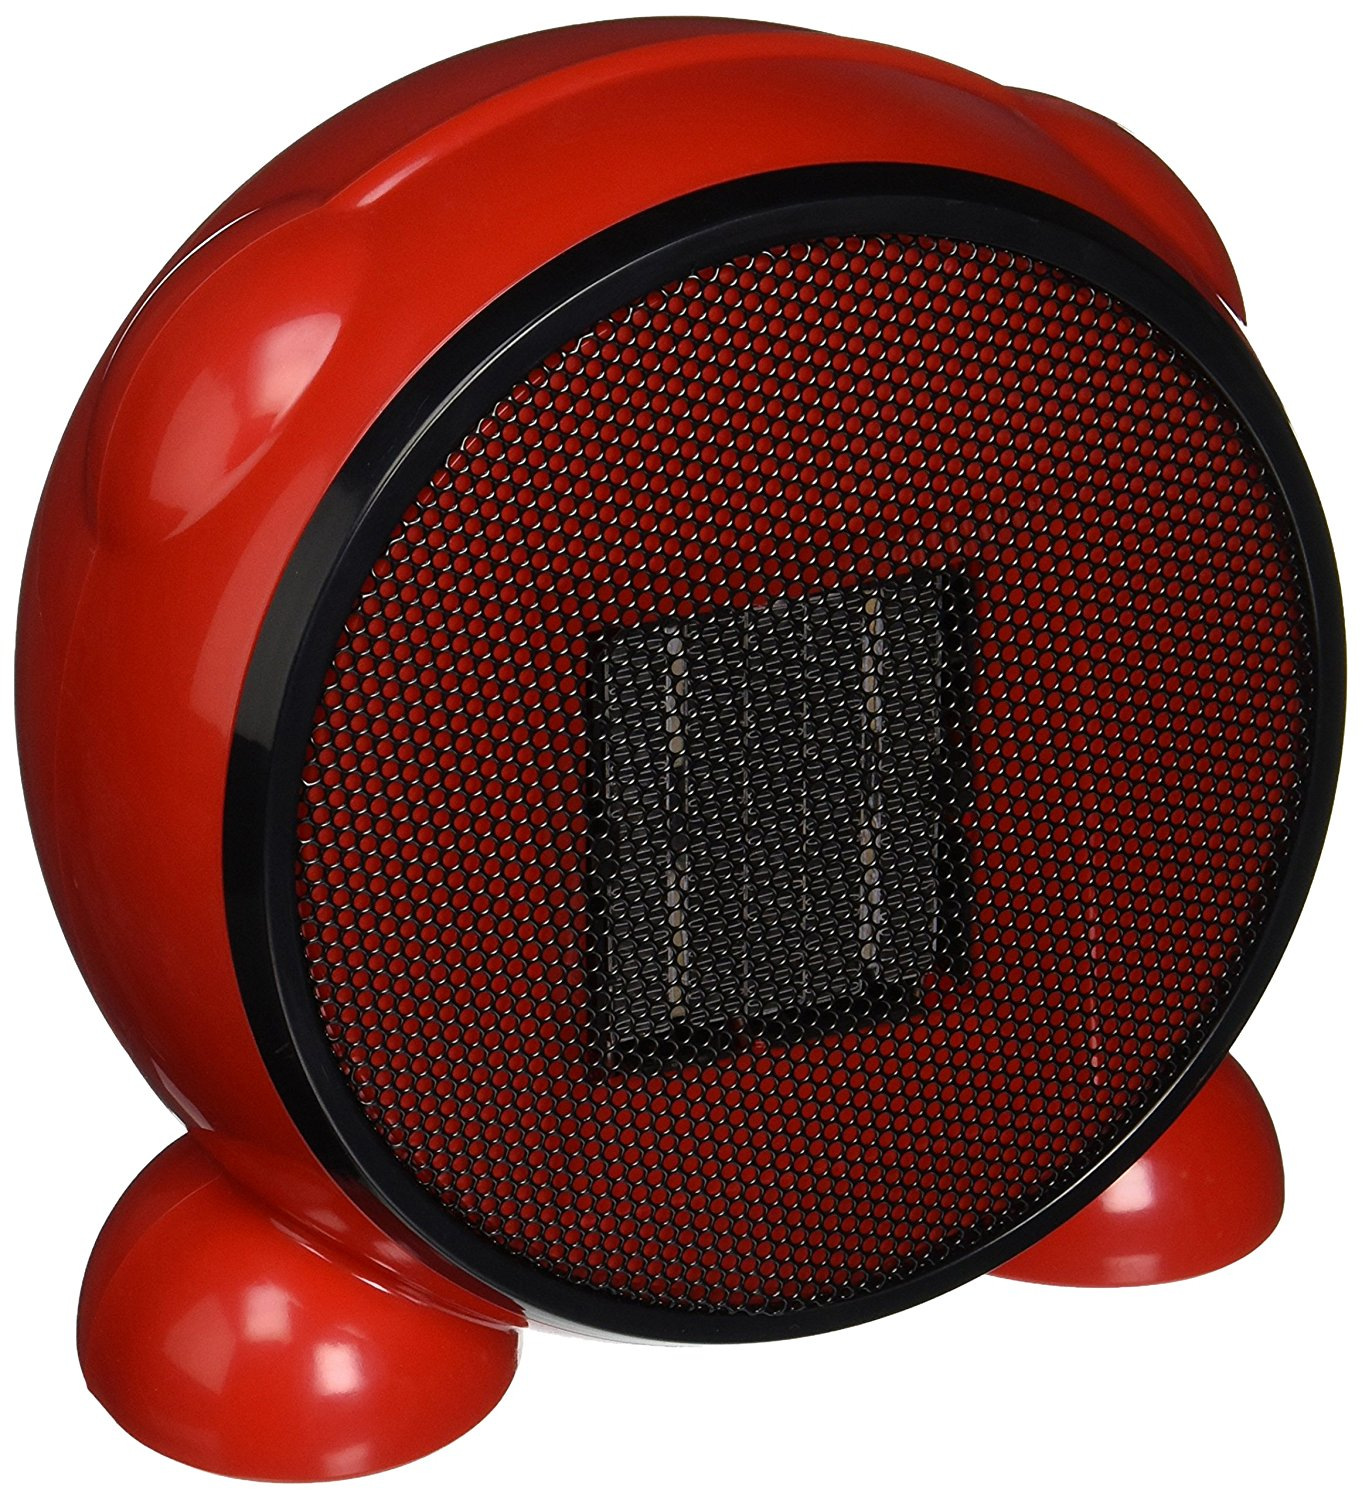 LEDMart Portable Space/Desktop Heater, Red